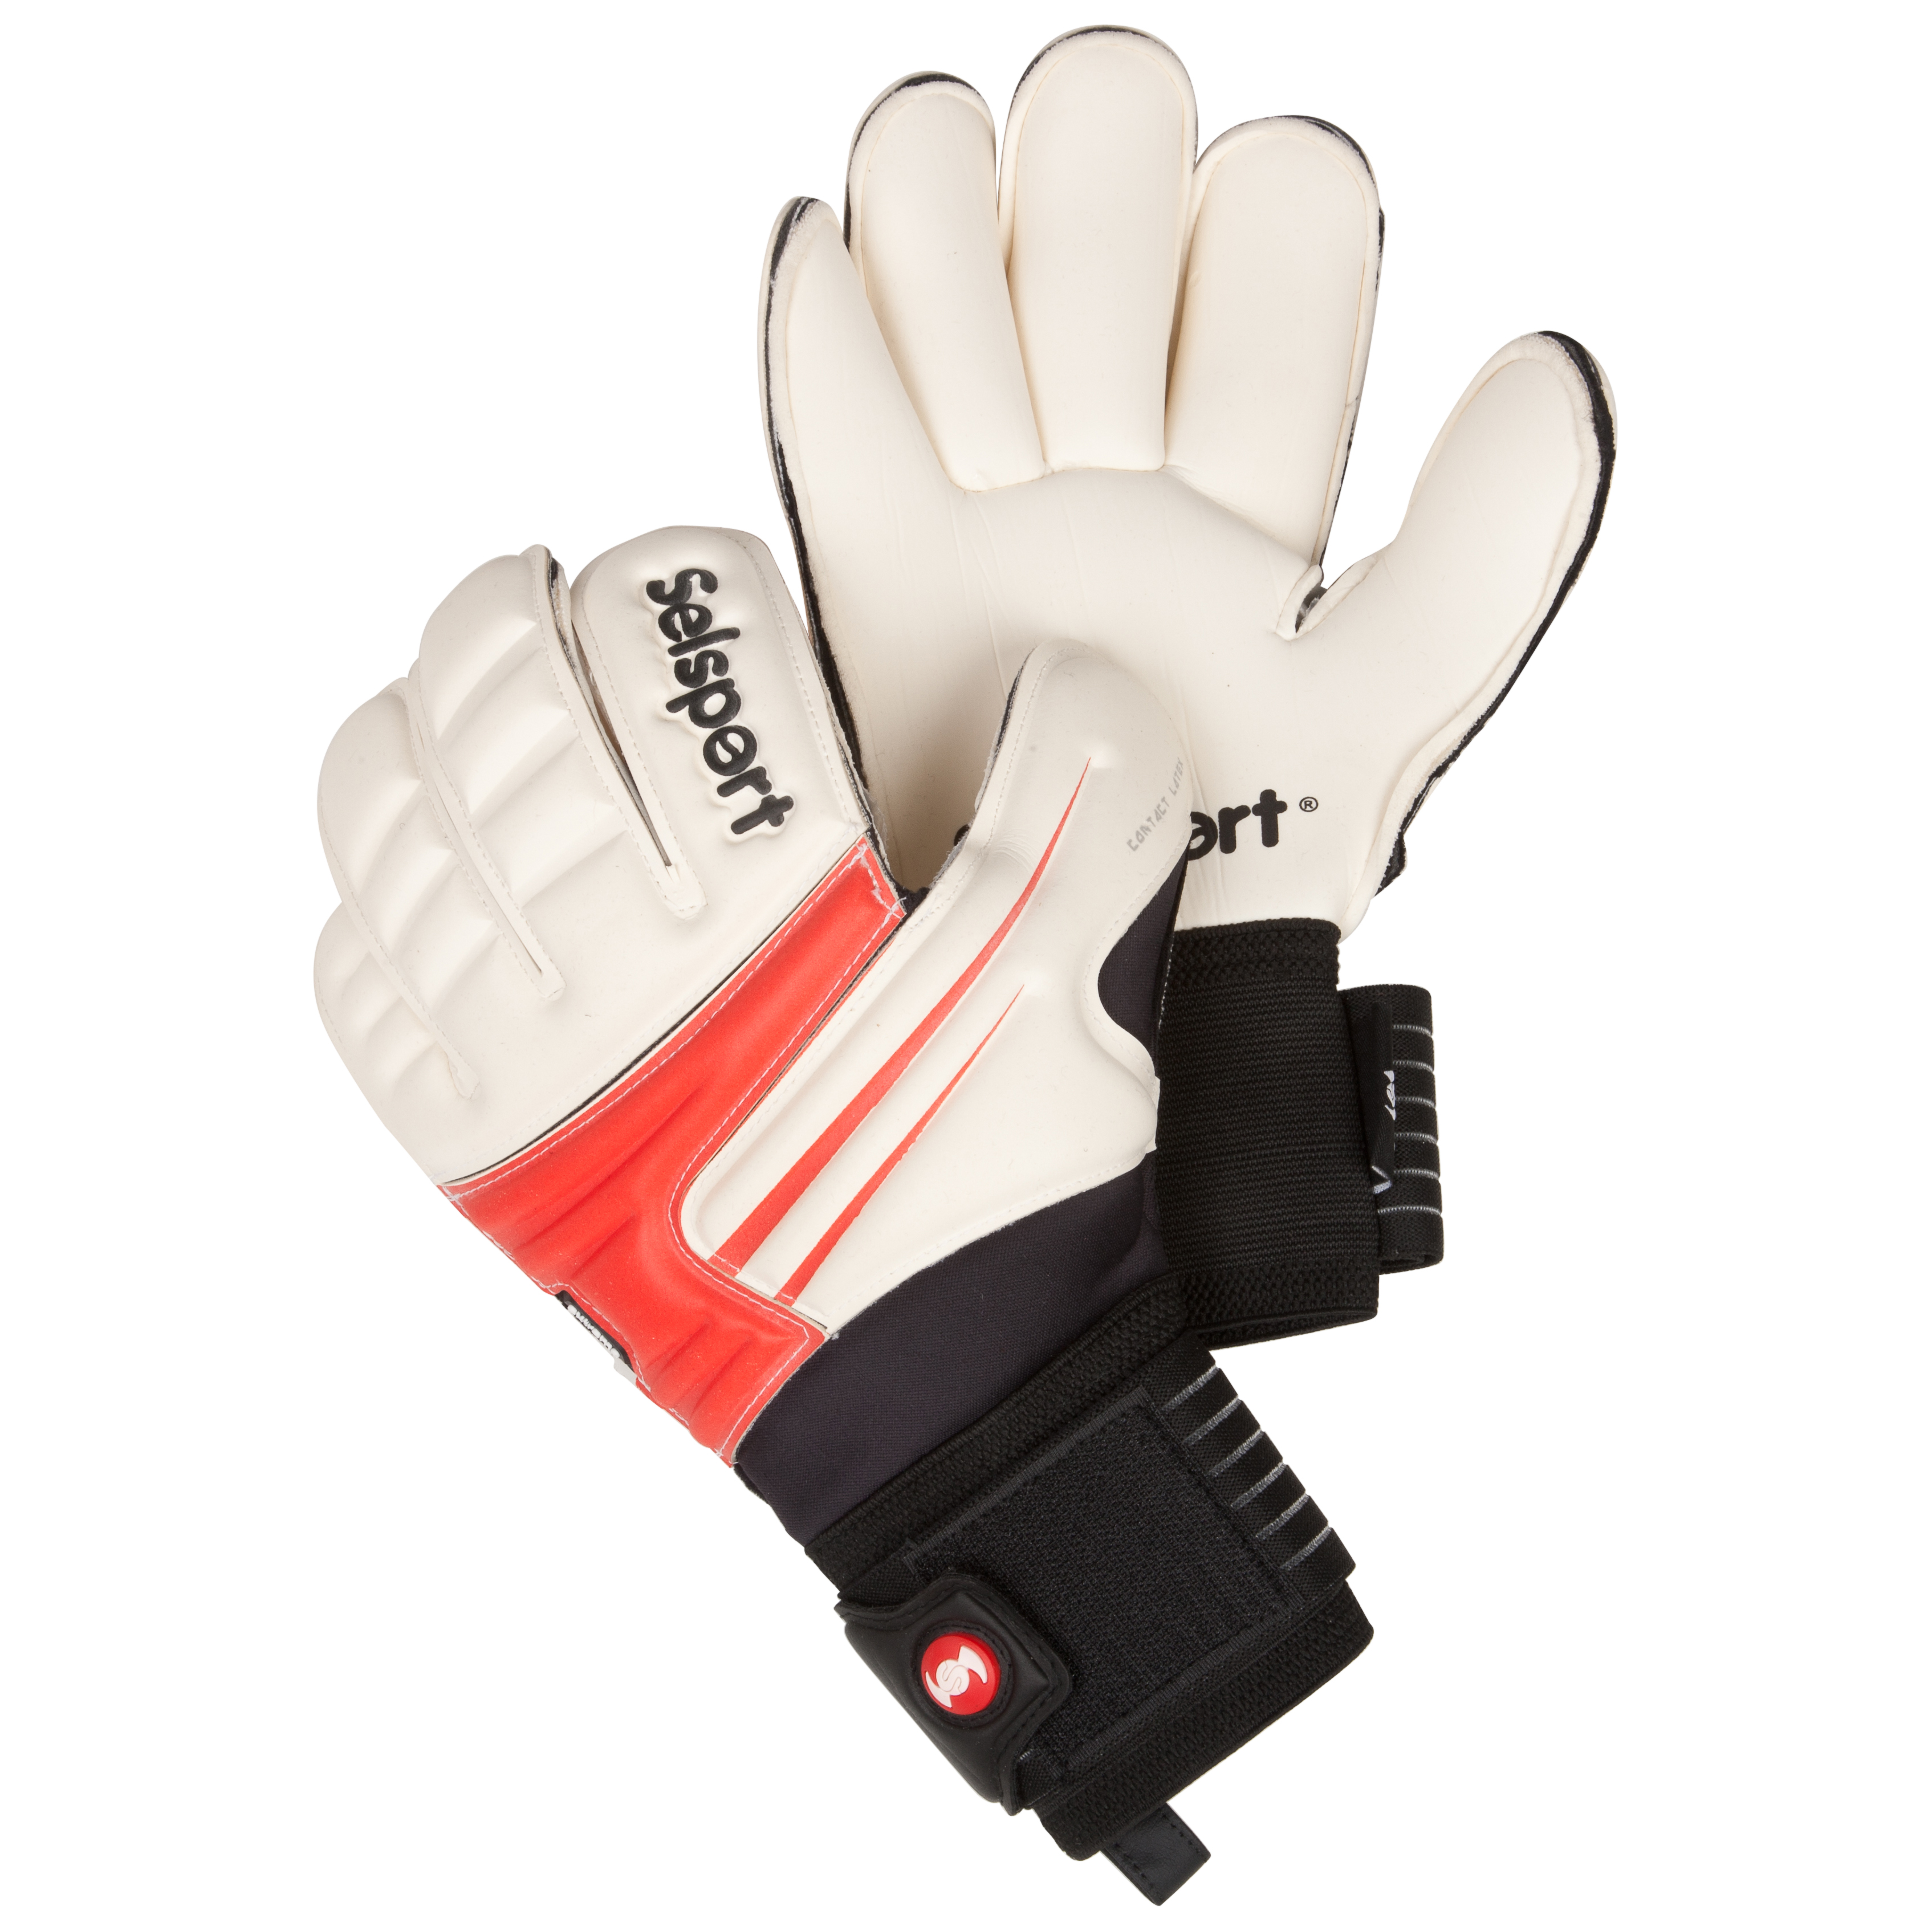 Selsport Extreme 2 Goalkeeper Gloves - Red